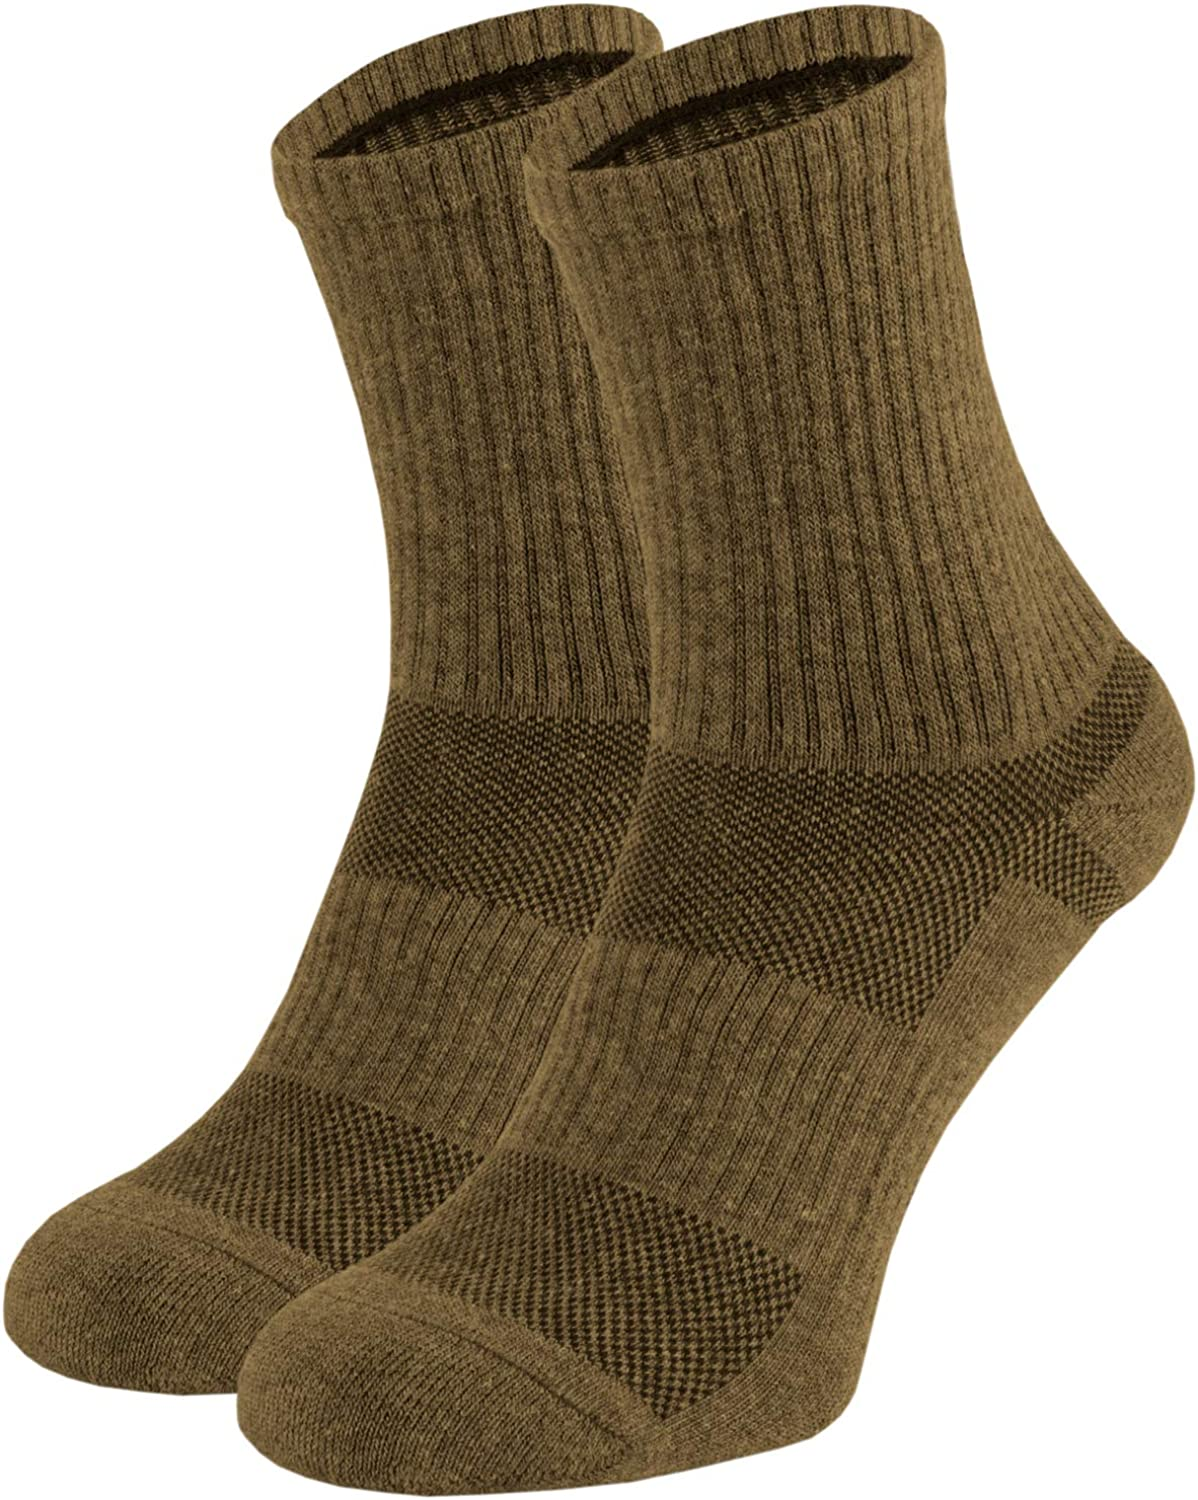 281Z Military Cotton Micro Crew Boot Socks Cushioned Sole Hiking Outdoor Moisture Wicking Coyote Brown